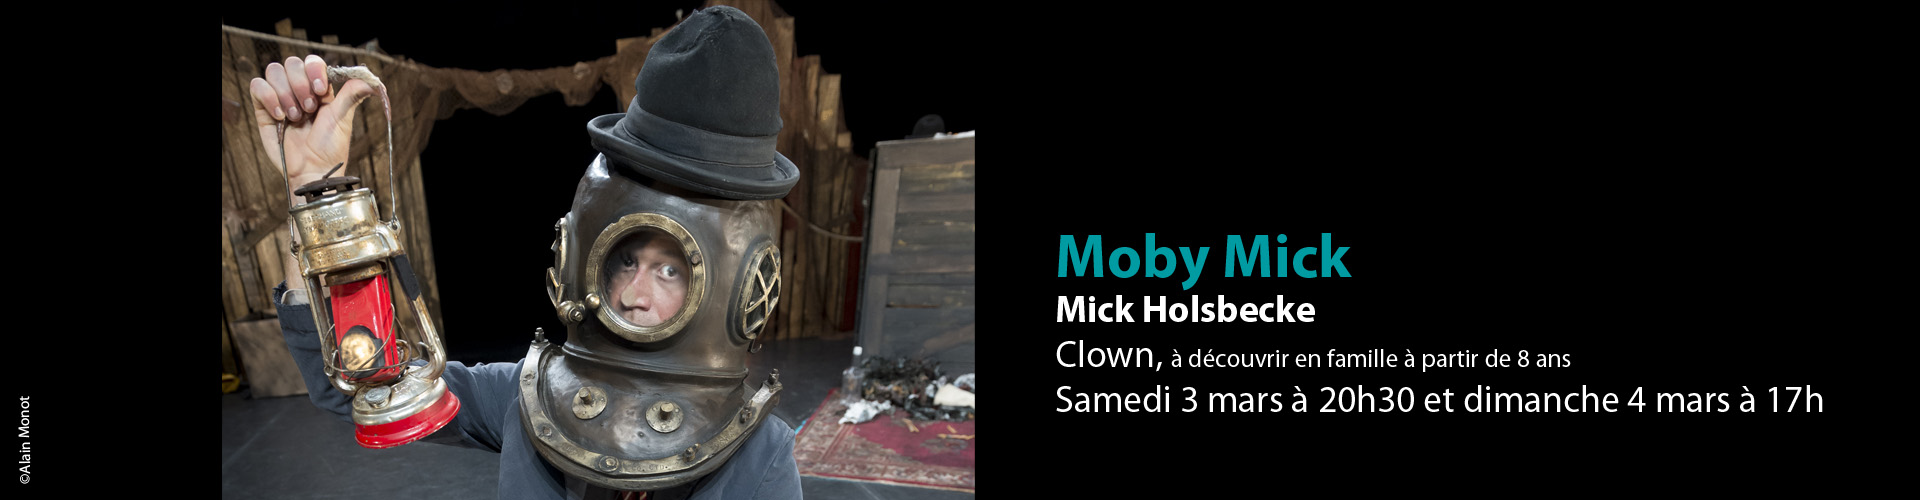 10---Moby-Mick